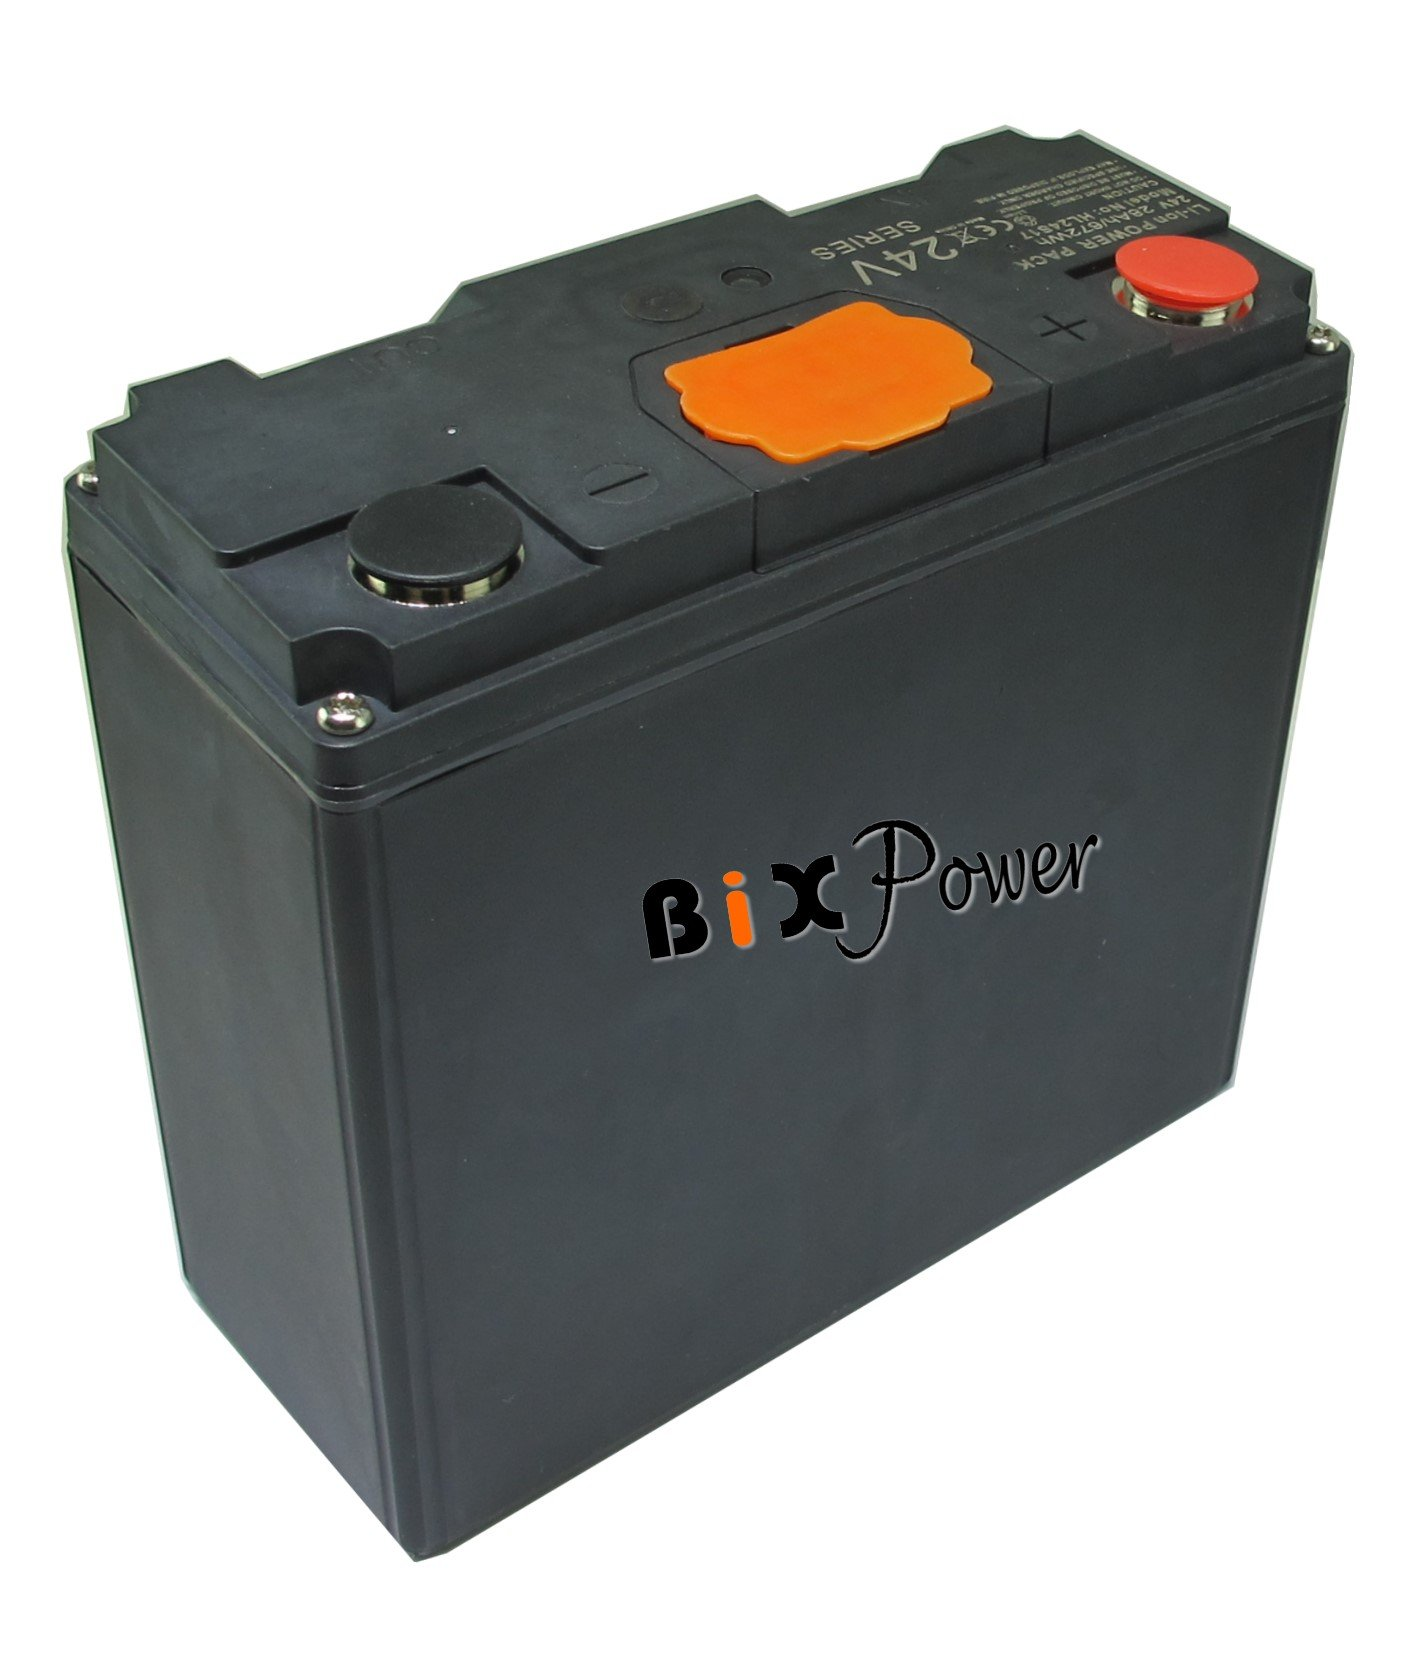 BiXPower 24V 24Ah (576 Watt-hour) Super High Capacity Light Weight Rechargeable Battery -BiXPower HL2417B by BiXPower